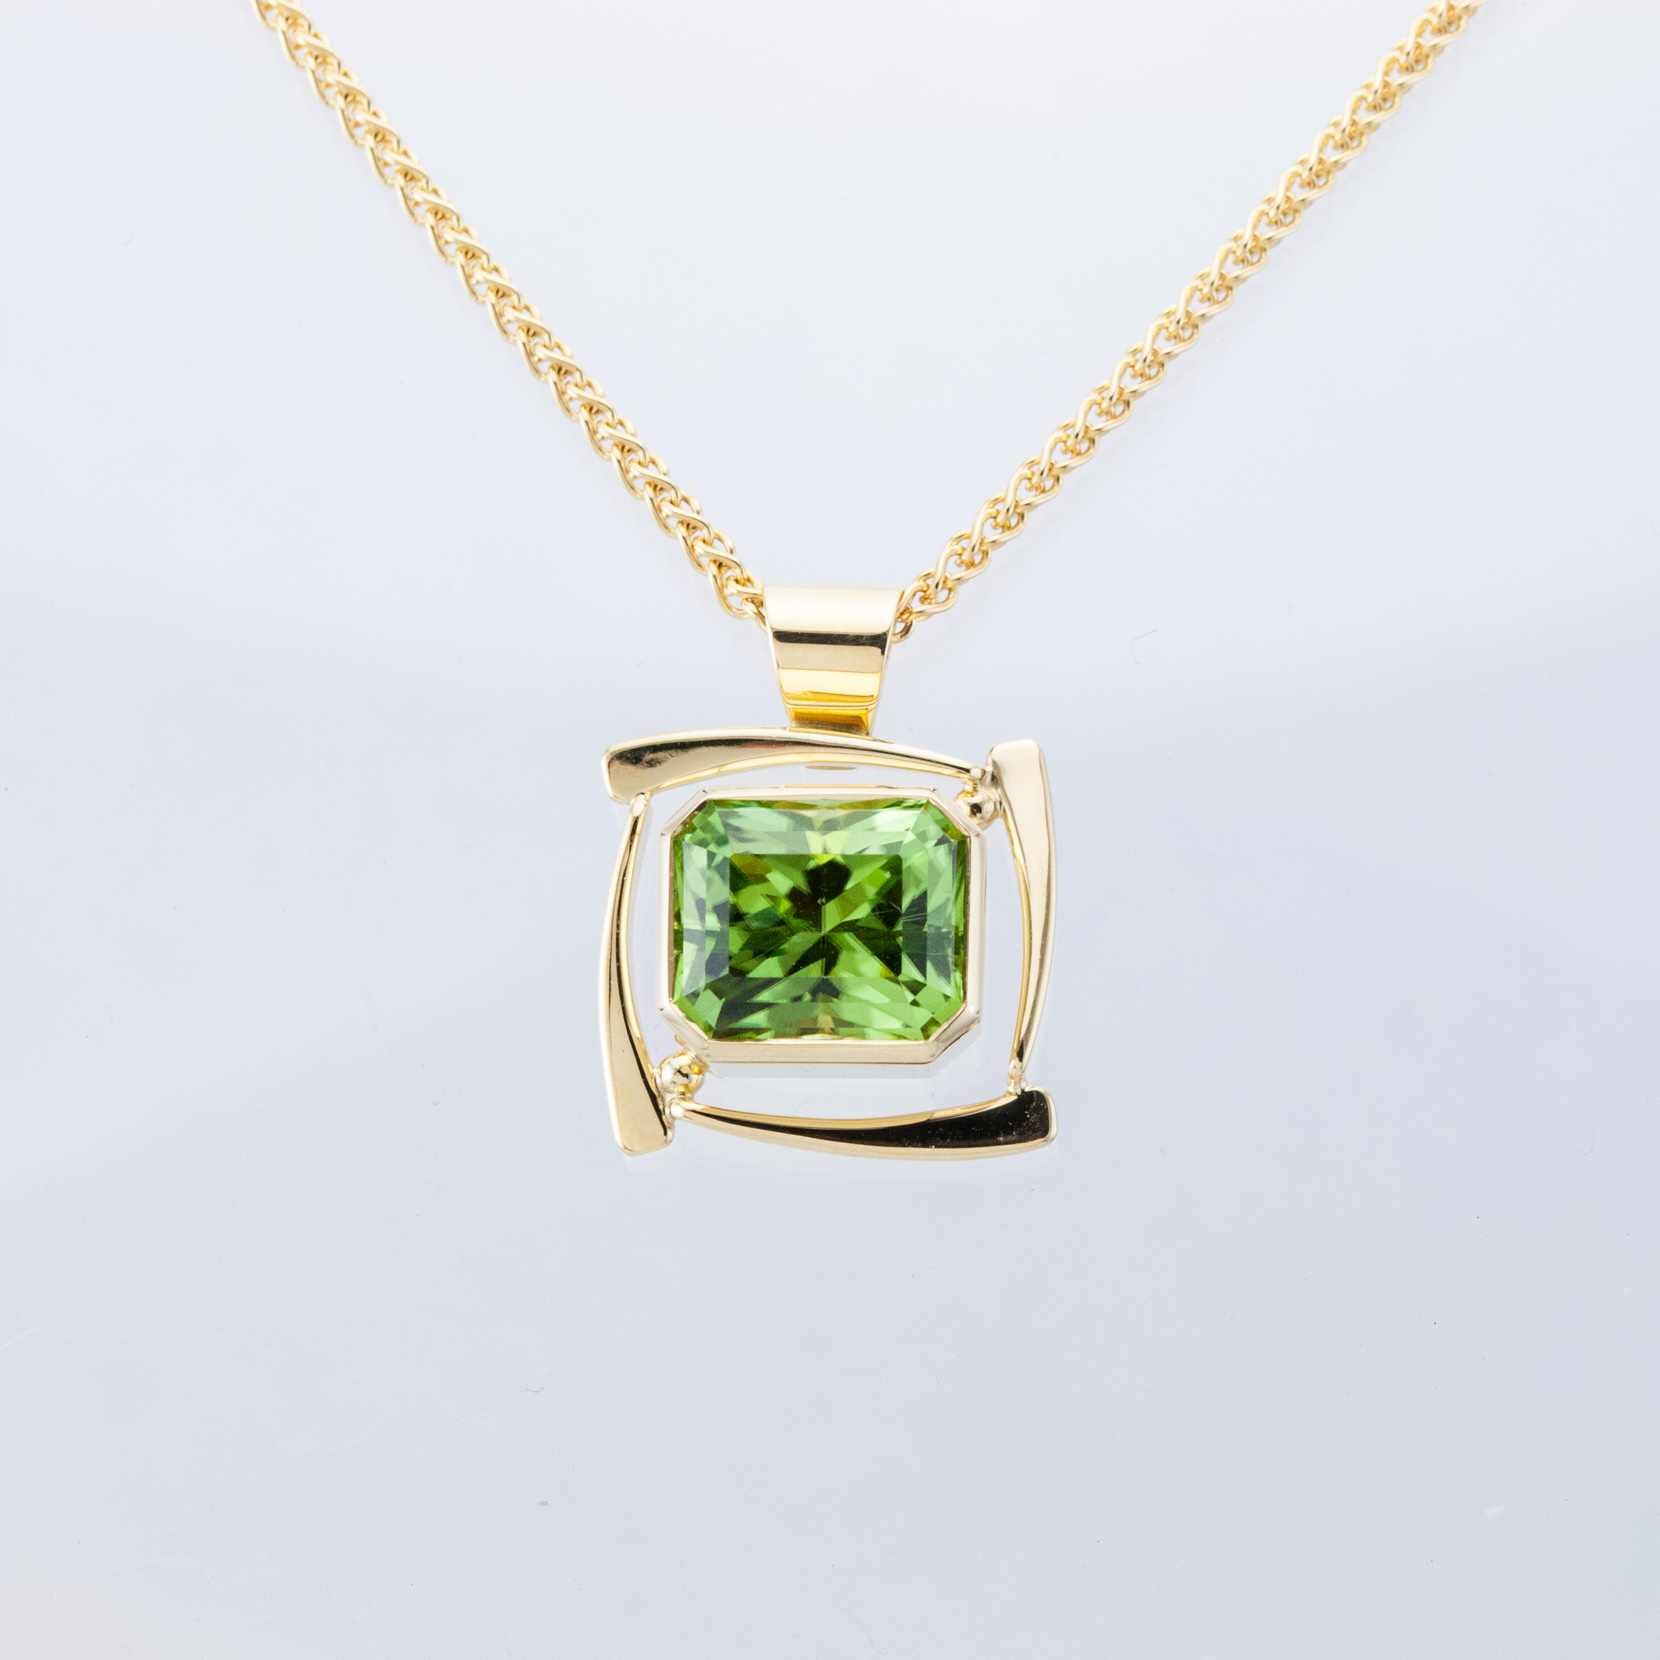 Zephyr Pendant with Peridot